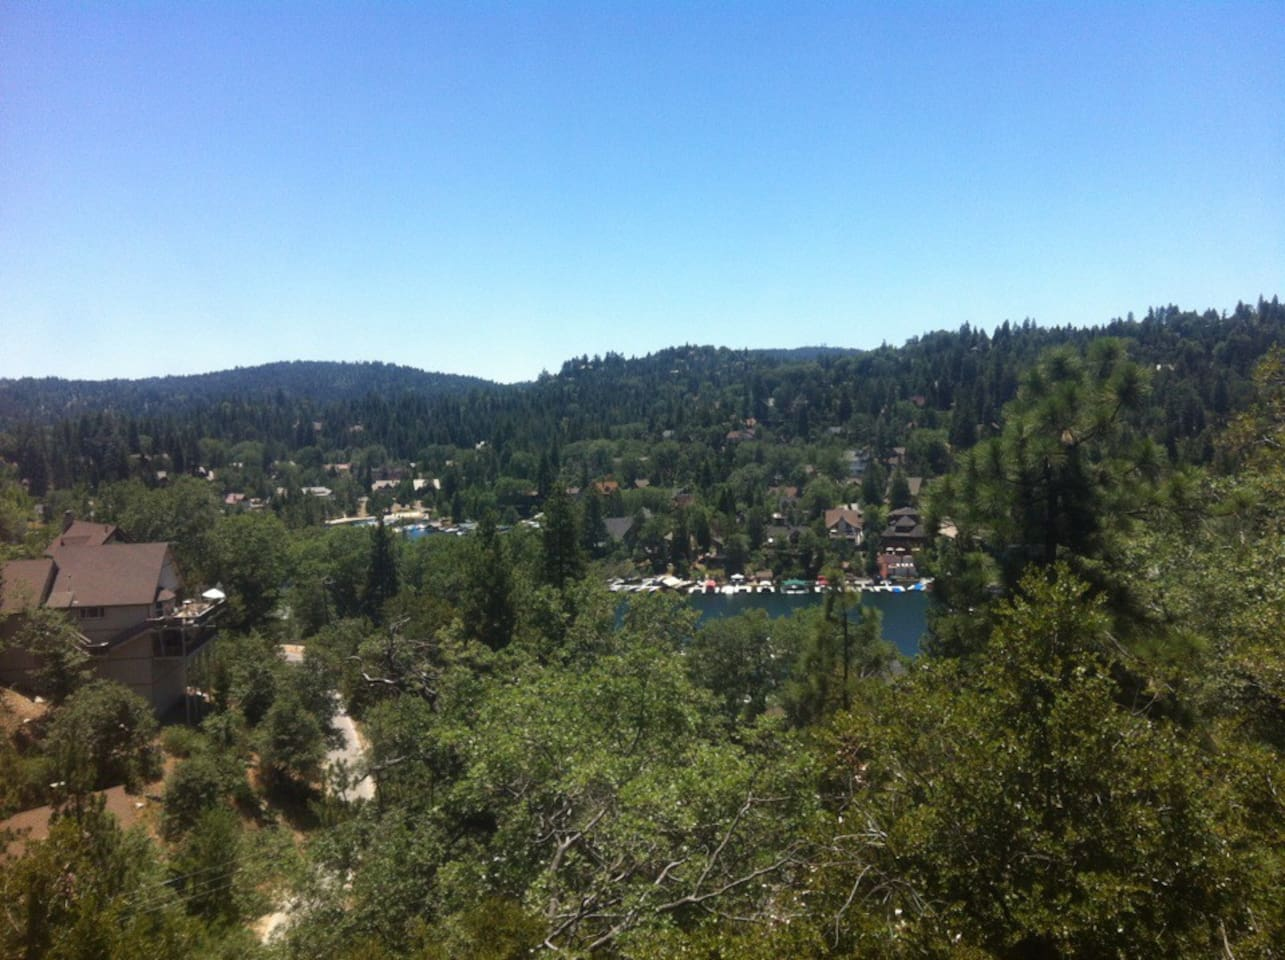 View from the Upper Deck overlooks Lake Arrowhead and surrounding trees